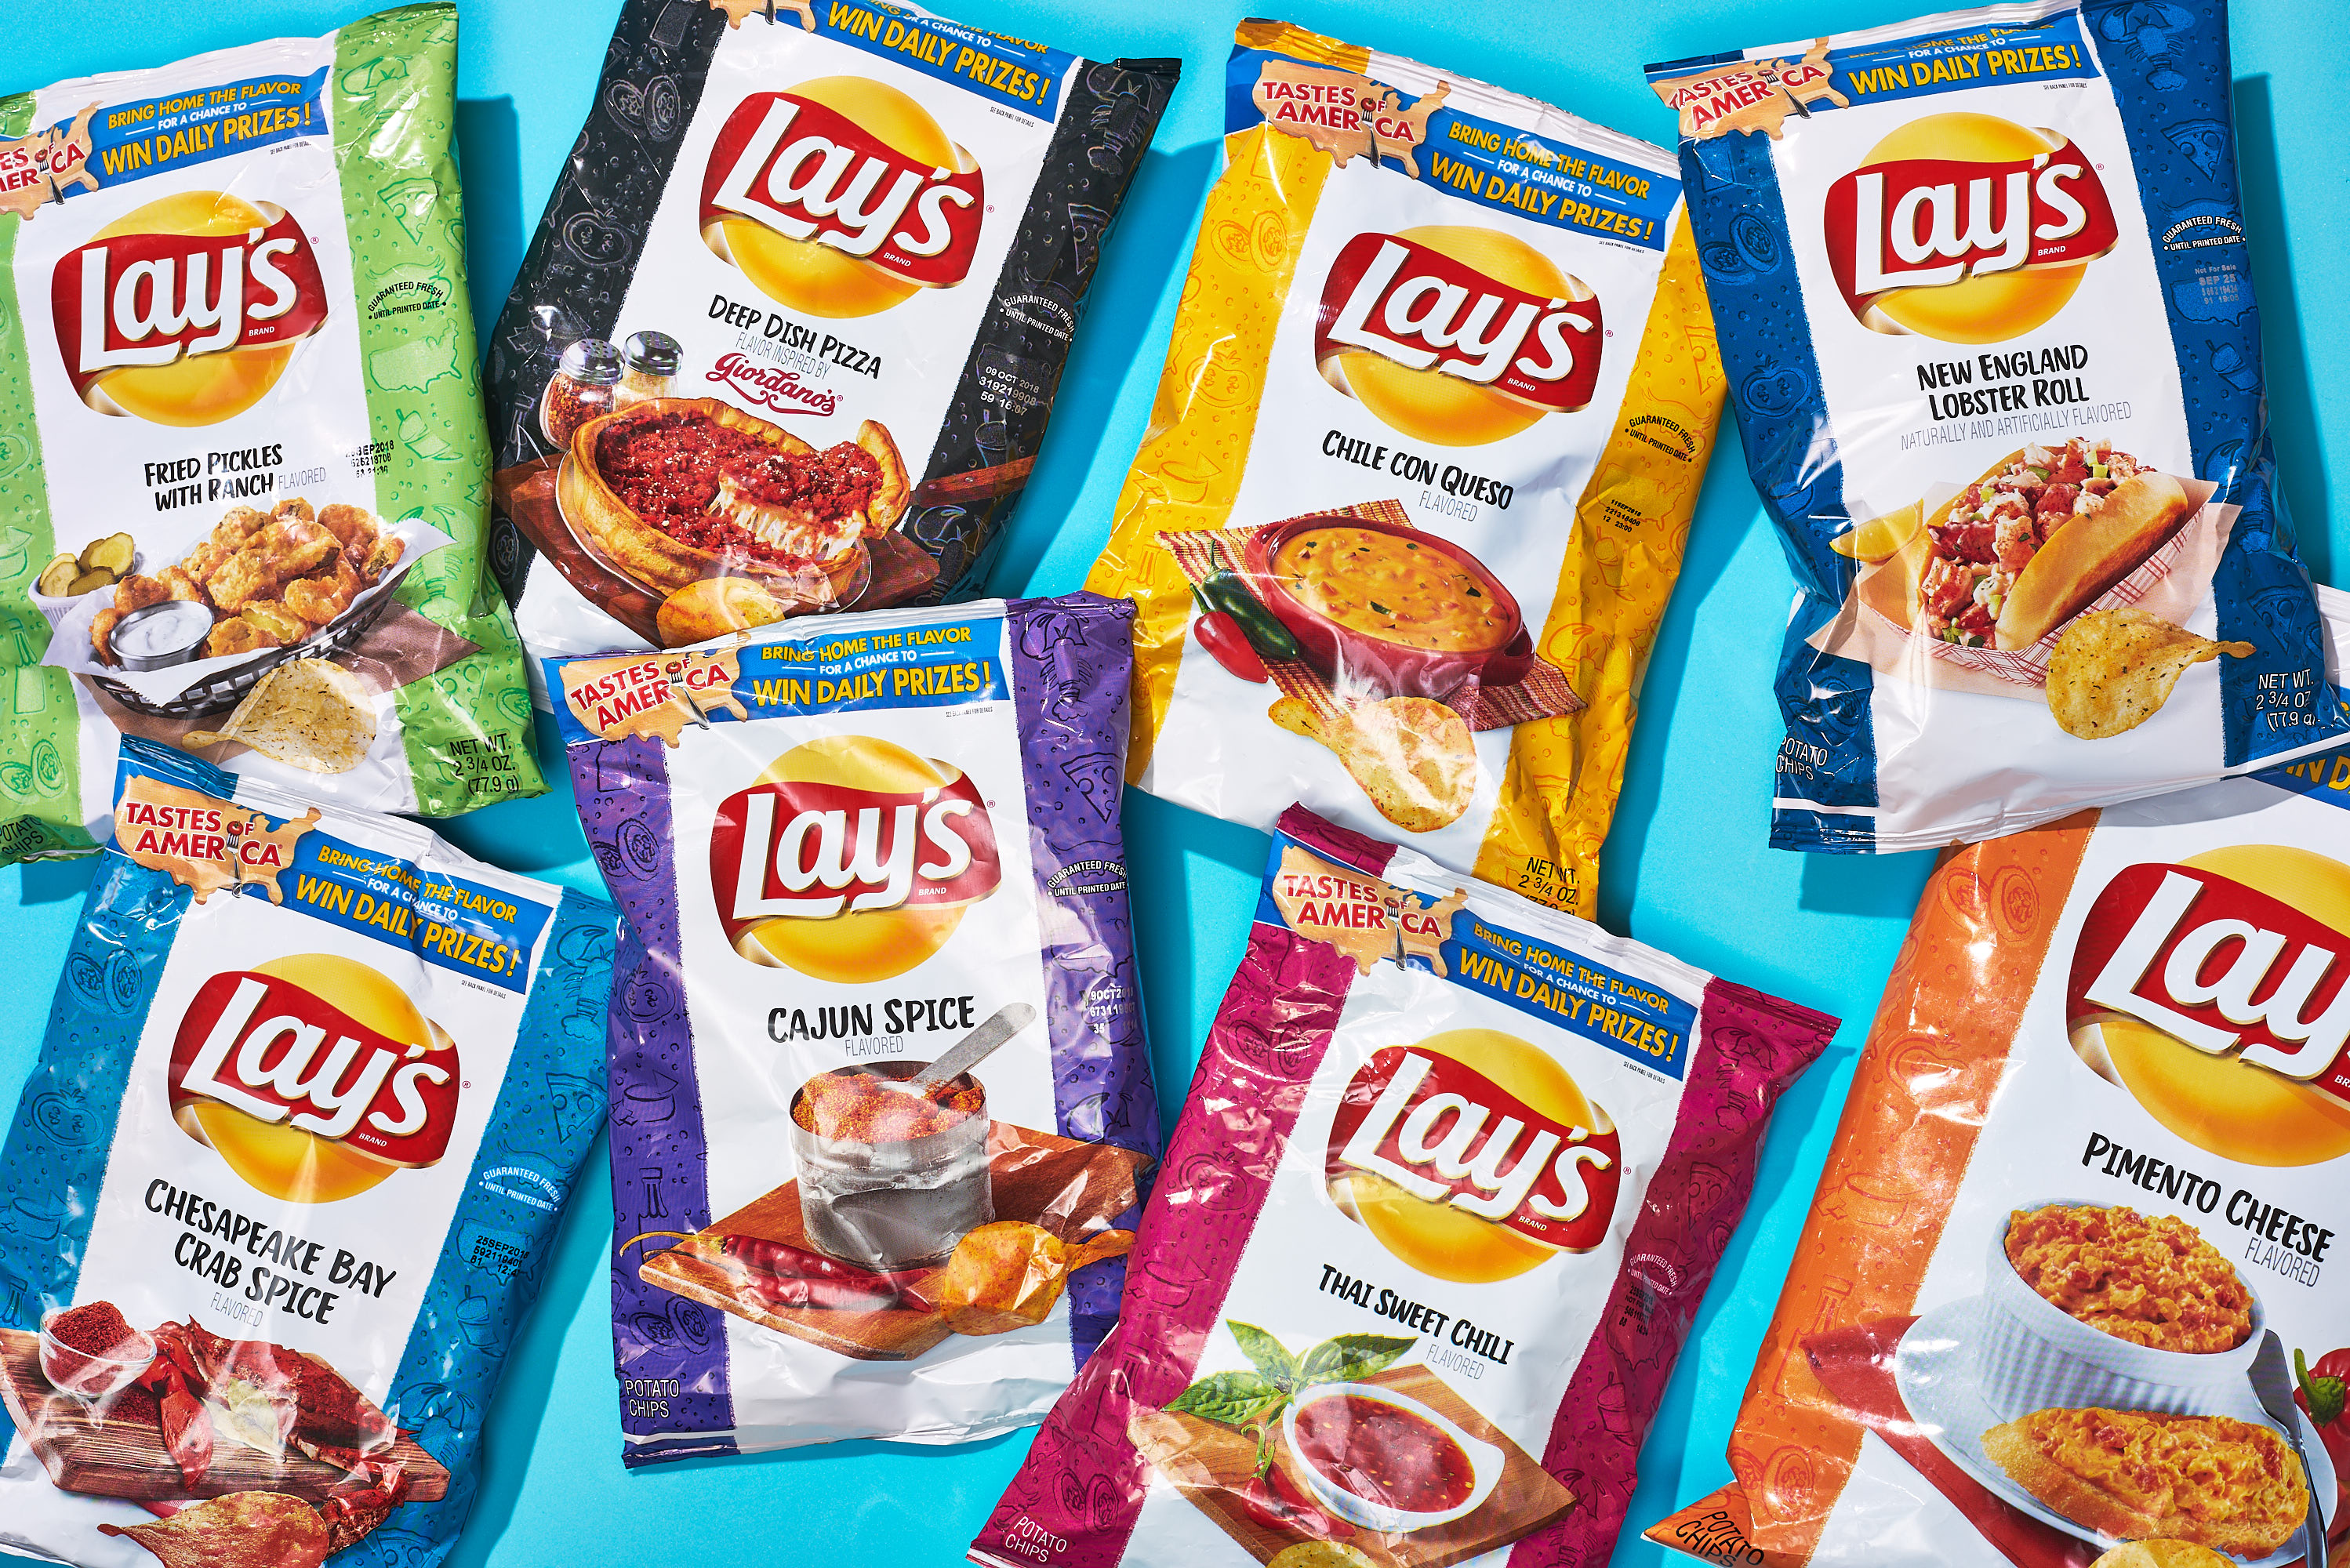 We Tried the 8 New Flavors of Lay's Potato Chips | Kitchn